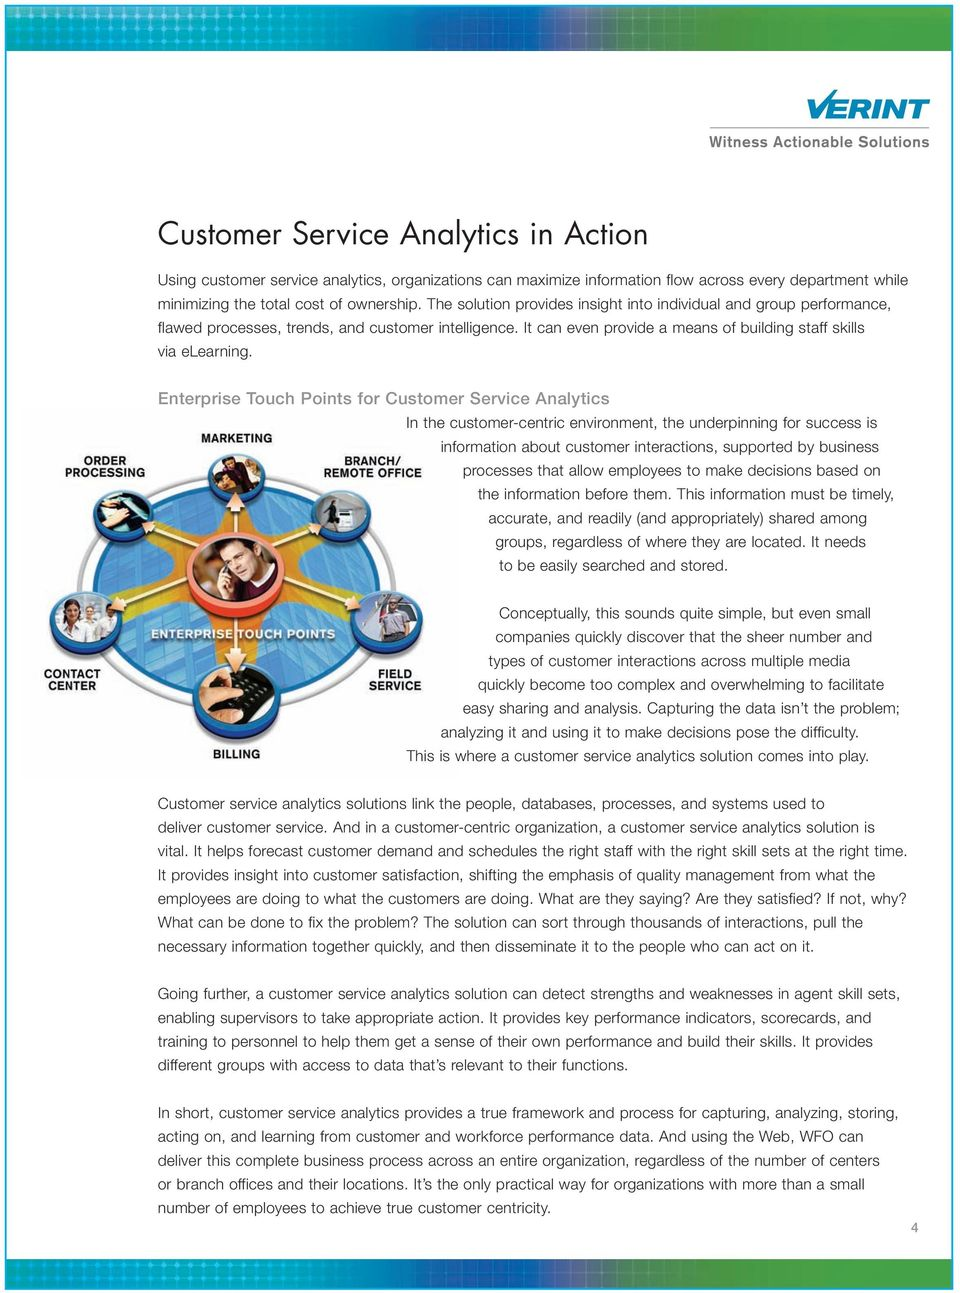 Enterprise Touch Points for Customer Service Analytics In the customer-centric environment, the underpinning for success is information about customer interactions, supported by business processes